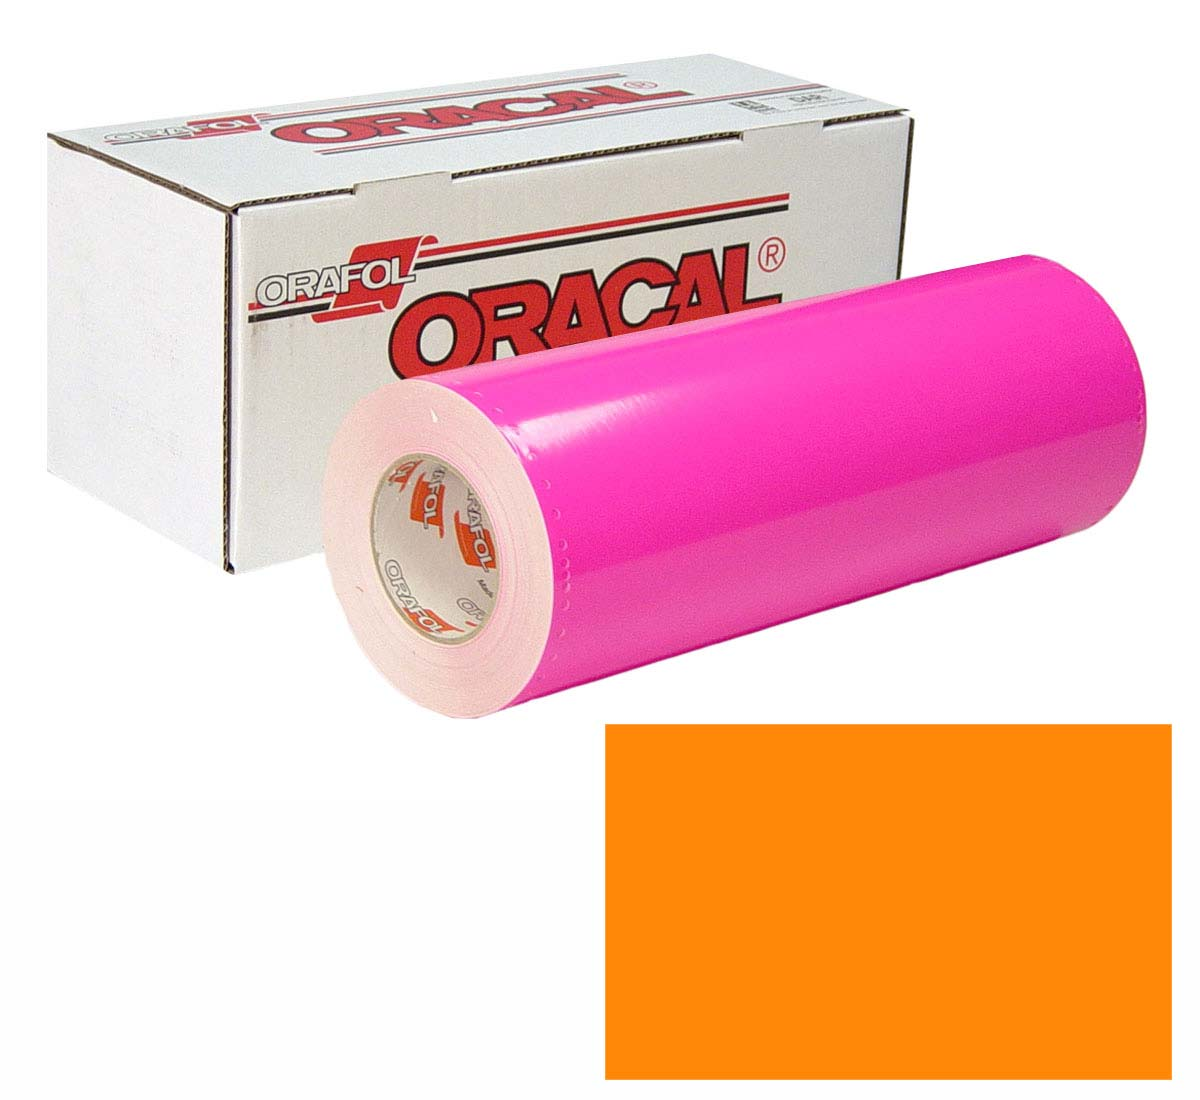 ORACAL 6510 Fluor Unp 24In X50Yd 037 Orange